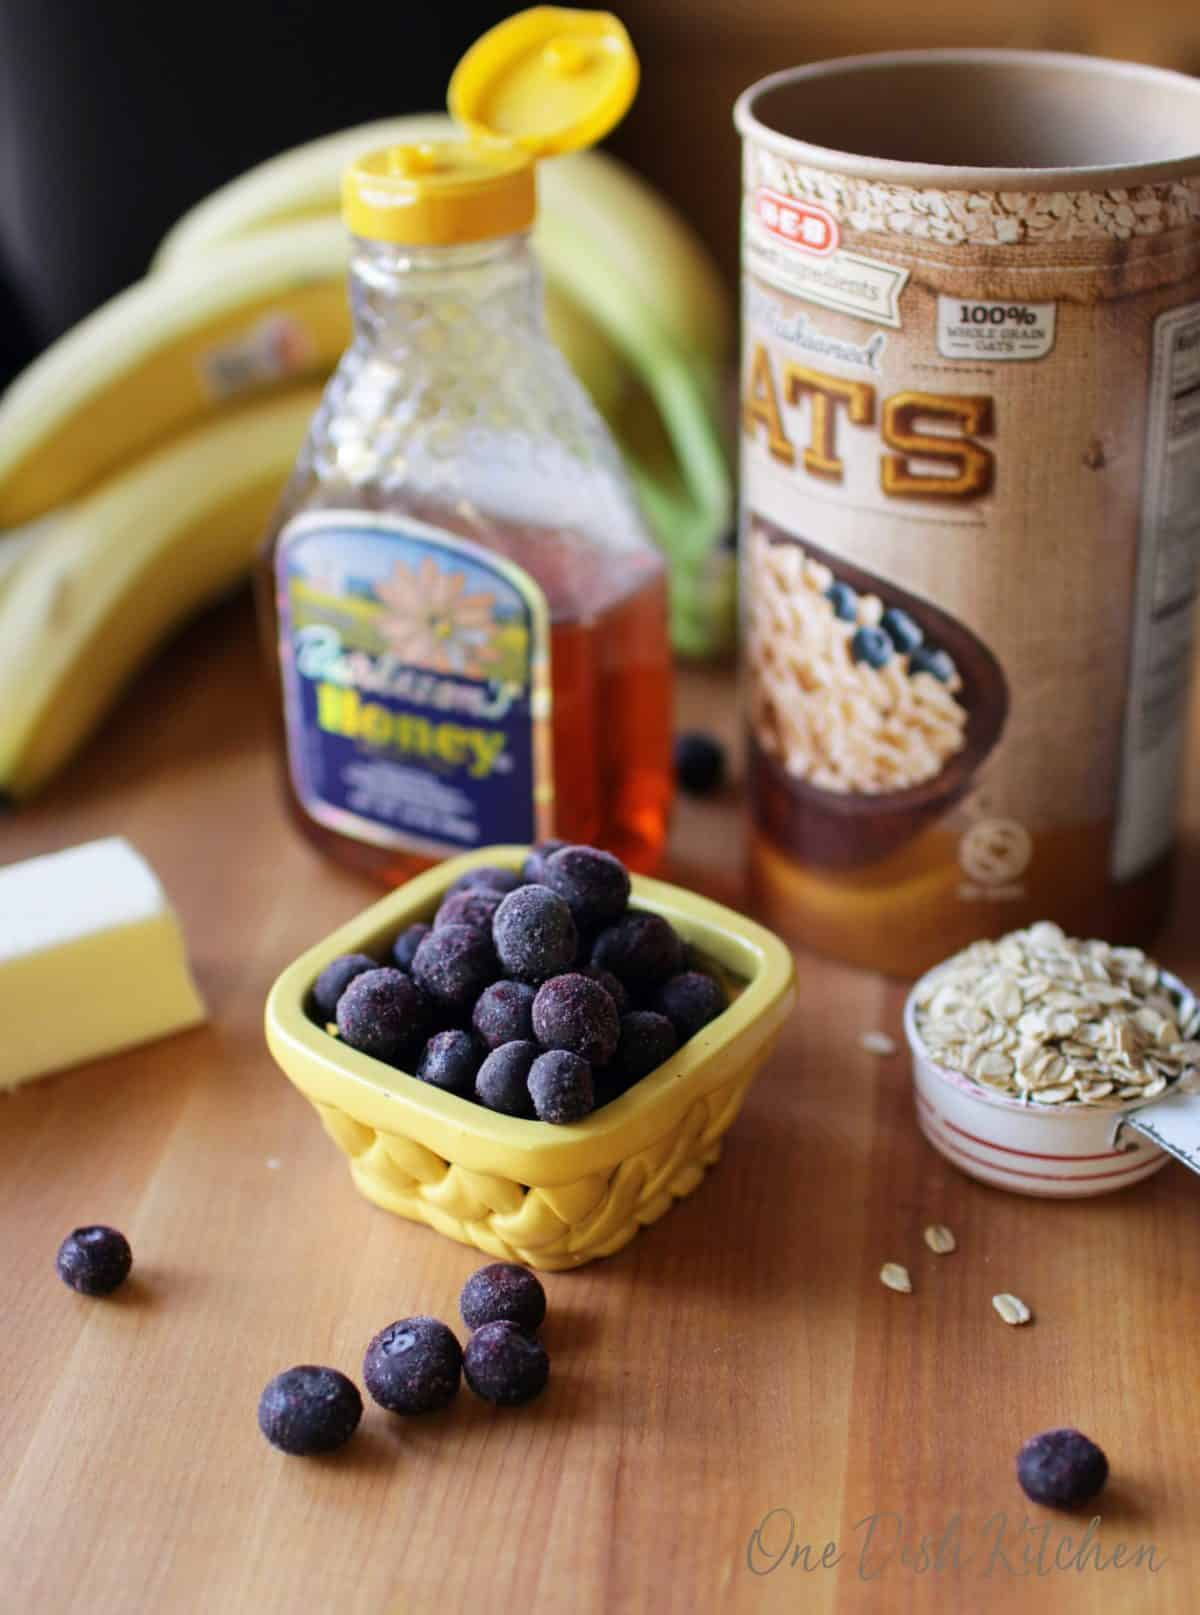 blueberries, bananas, oats, honey and butter on a brown cutting board.